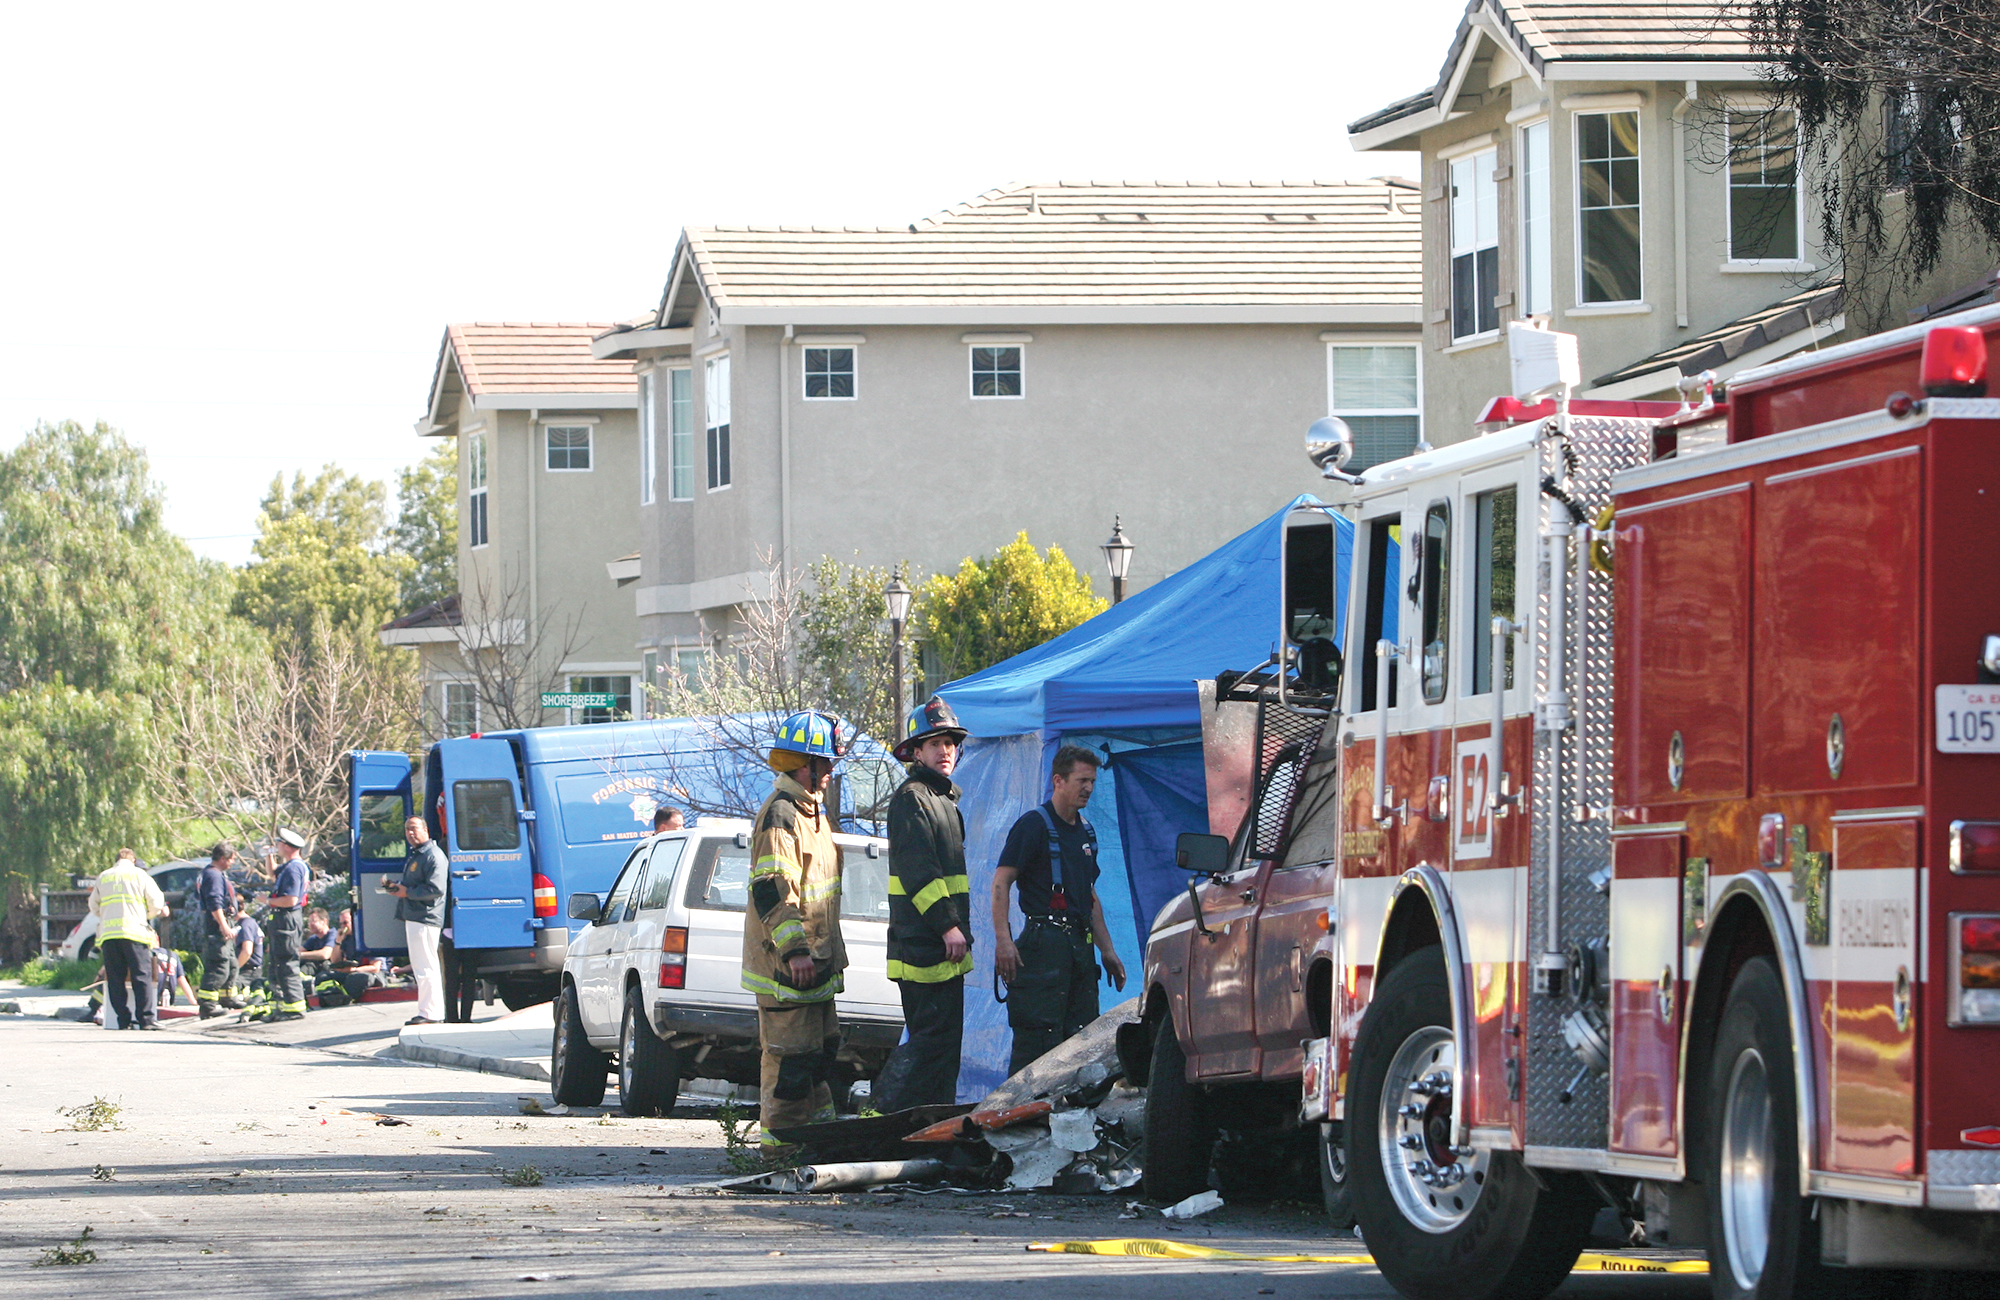 Members of the San Mateo County Forensics Team and firefighters from the Menlo Park, Palo Alto and East Palo Alto fire departments respond to a plane crash on Beech Street on Feb. 17, 2010. Photo by Veronica Weber.